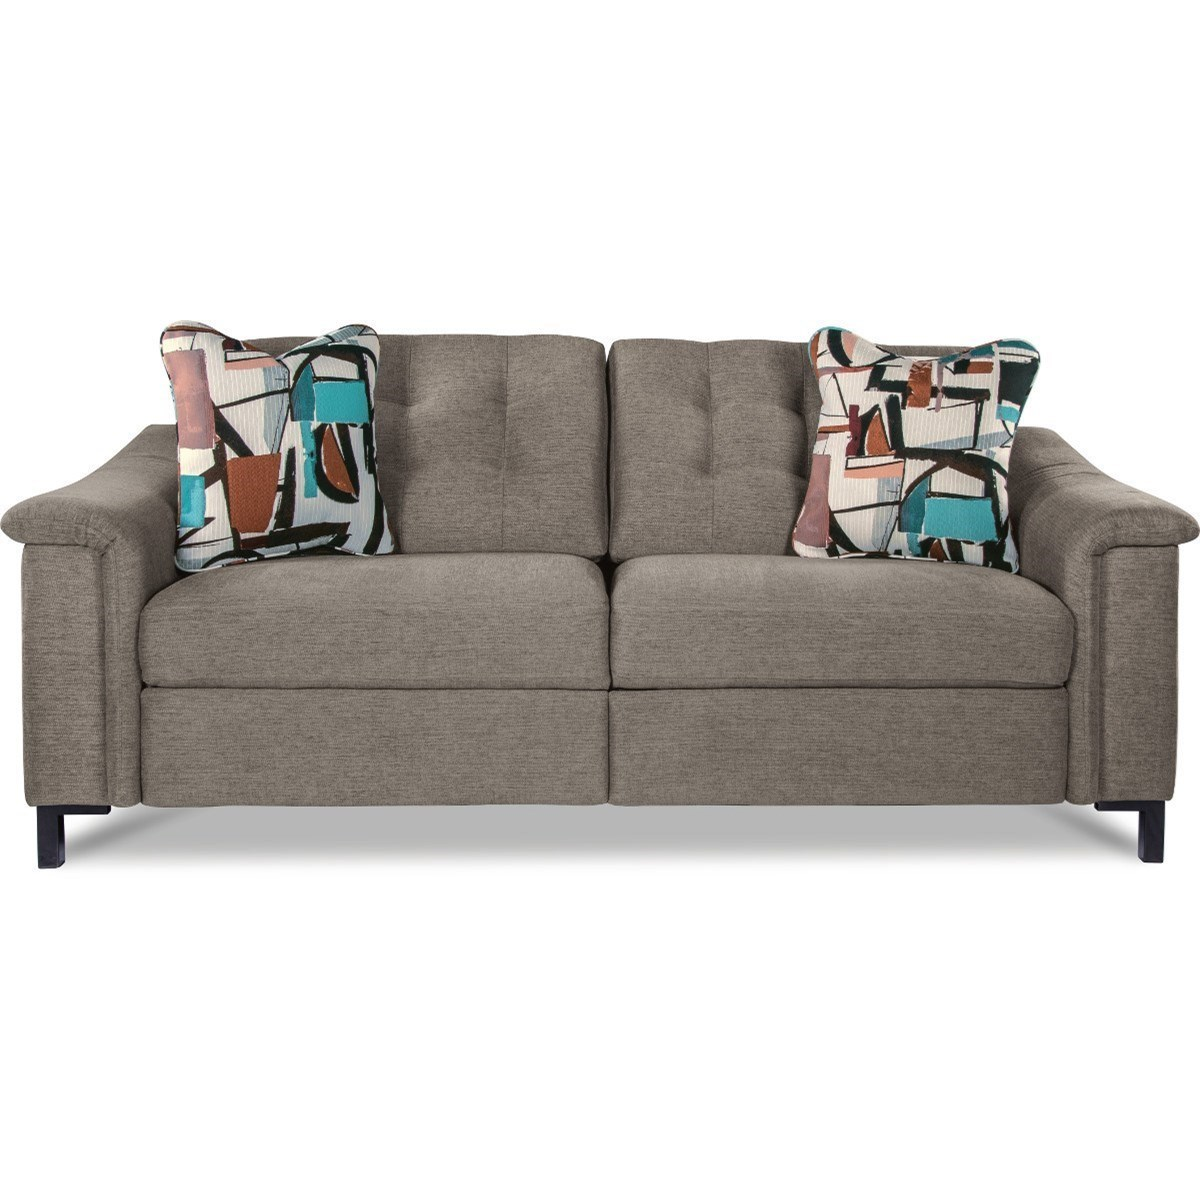 Power Reclining Two Seat Sofa With USB Charging